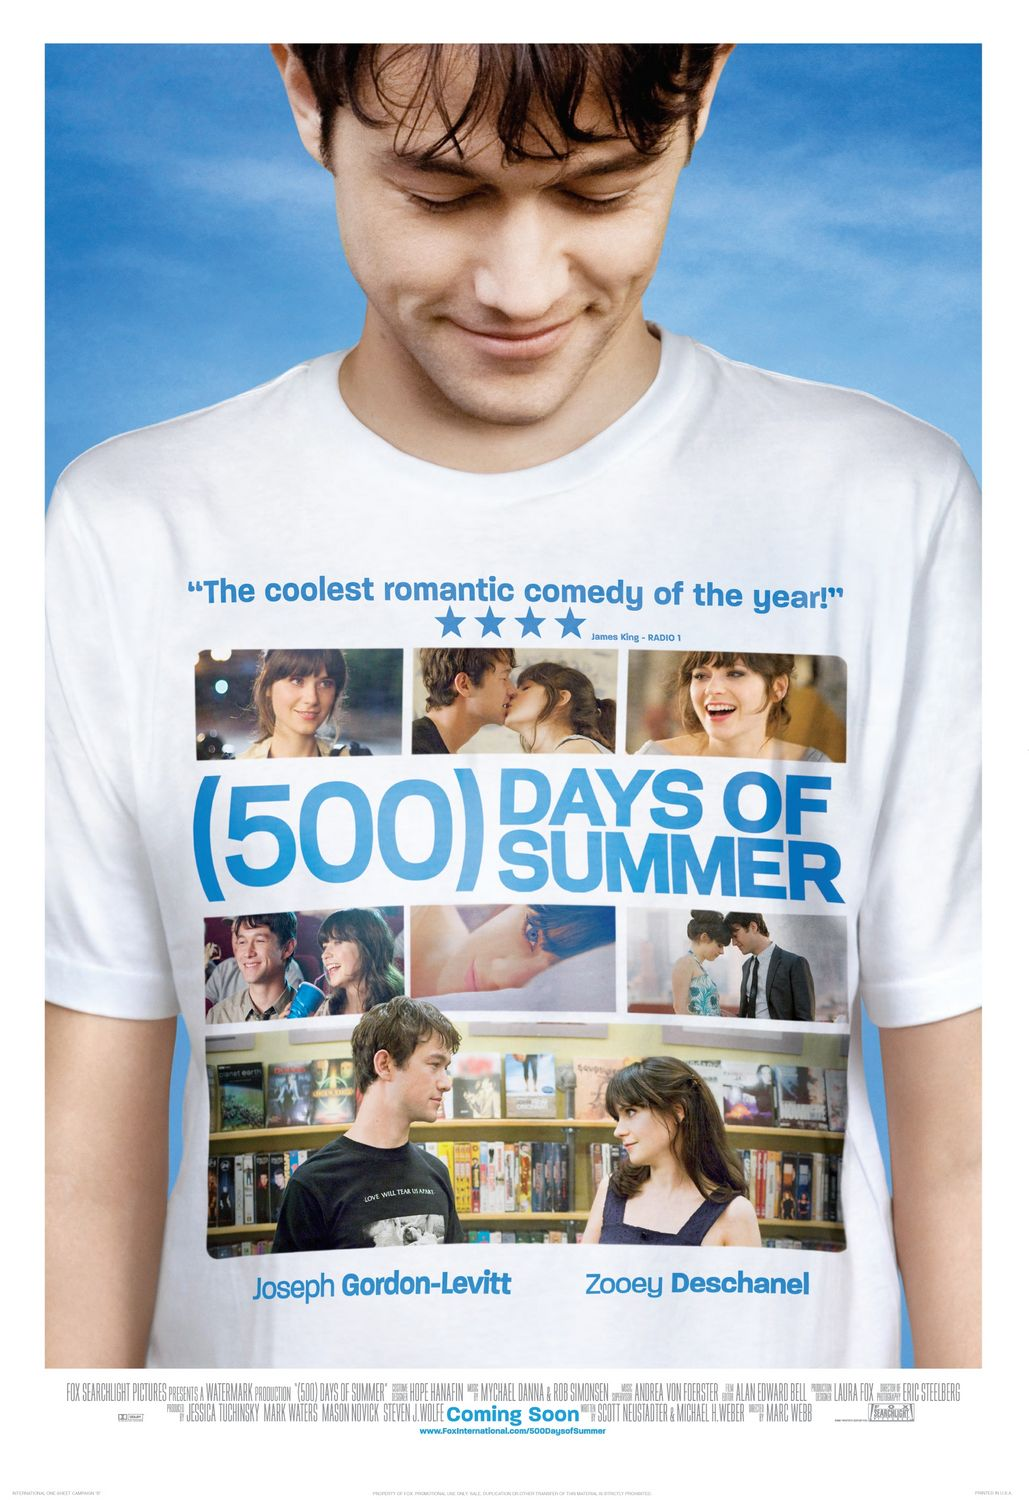 http://2.bp.blogspot.com/-qVEeLhwNV40/Tm3lAeIViPI/AAAAAAAABp4/0LPUGFq1ML8/s1600/five_hundred_days_of_summer_ver2_xlg.jpg